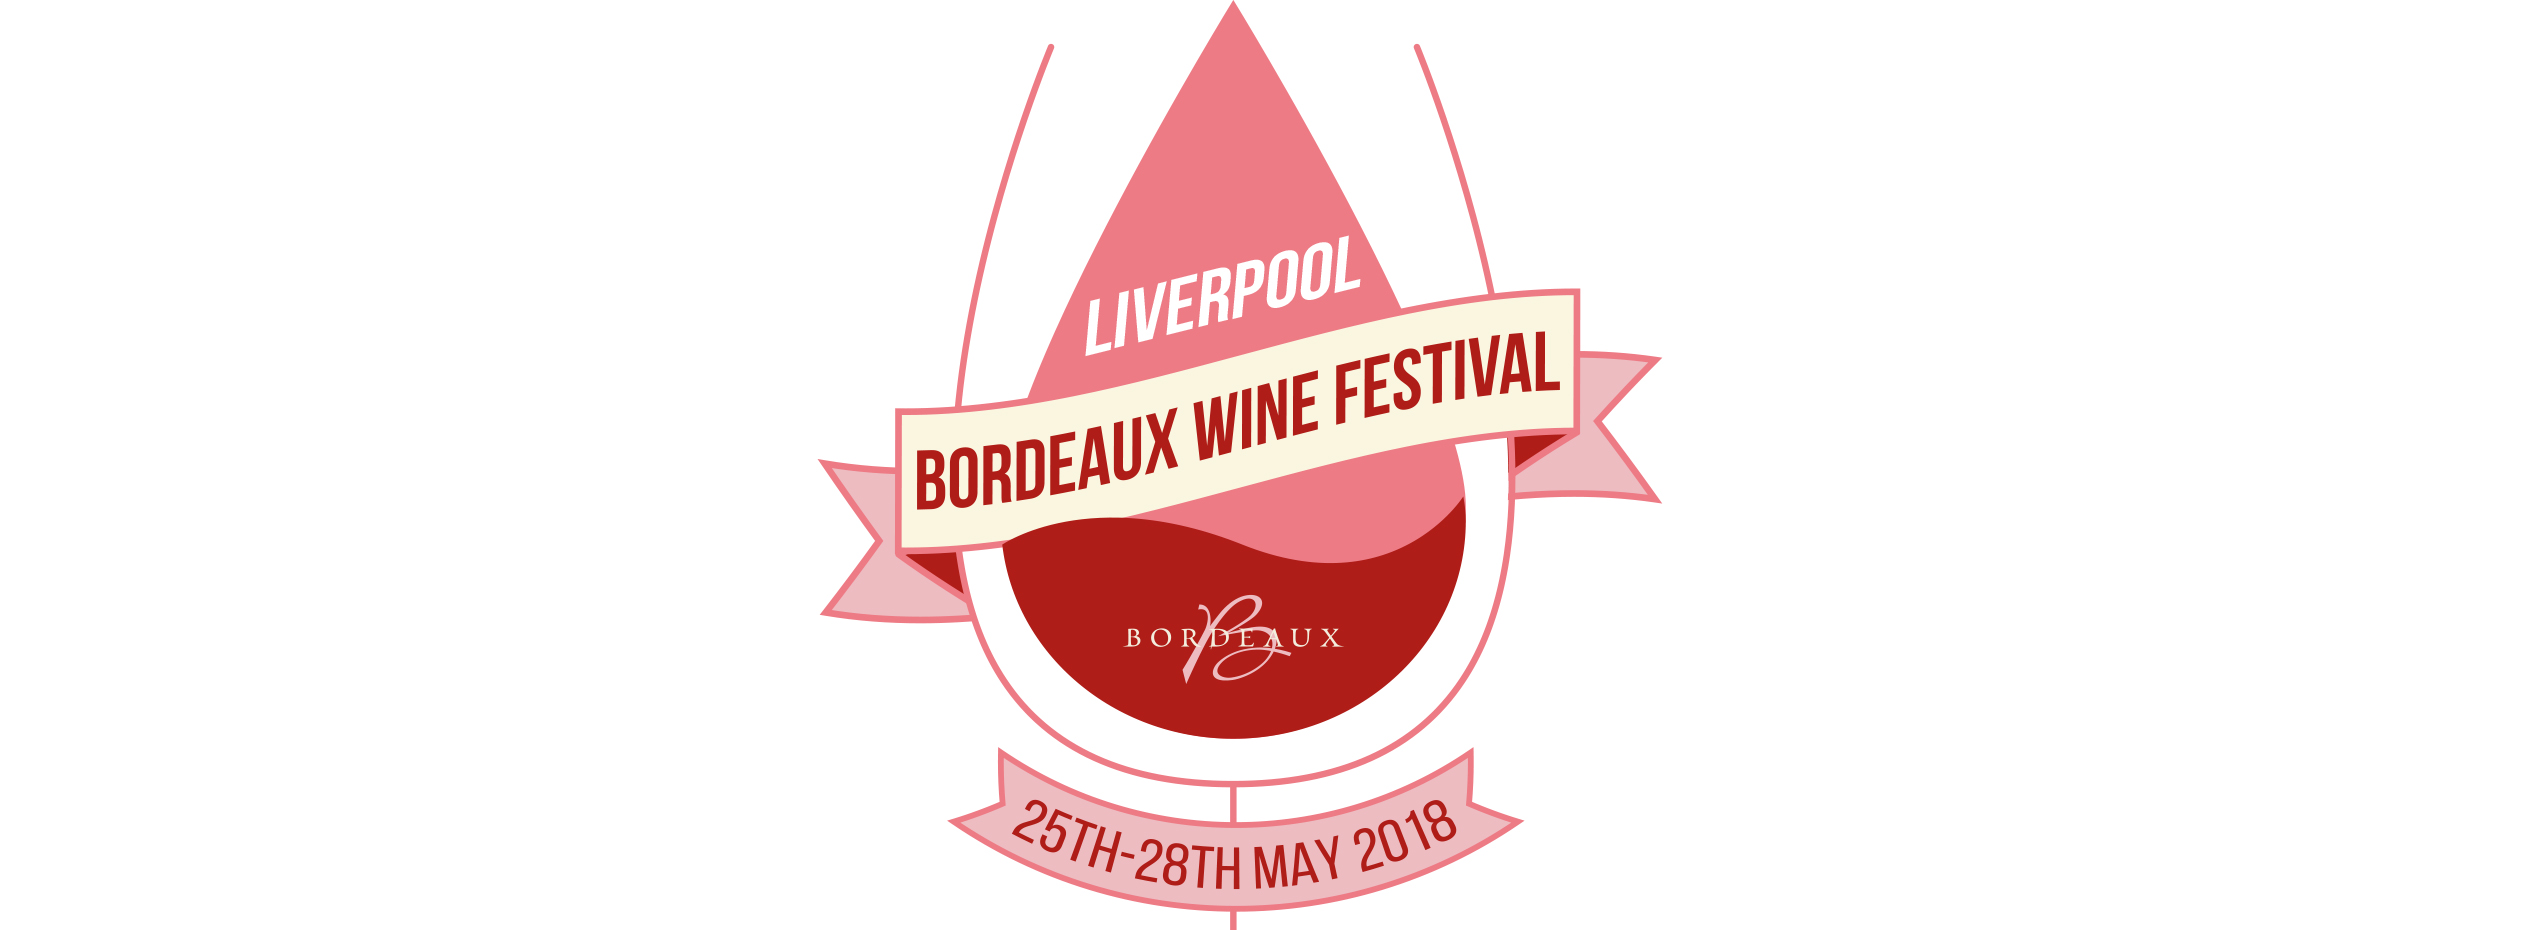 Liverpool Bordeaux Wine Festival – 25th- 28th May